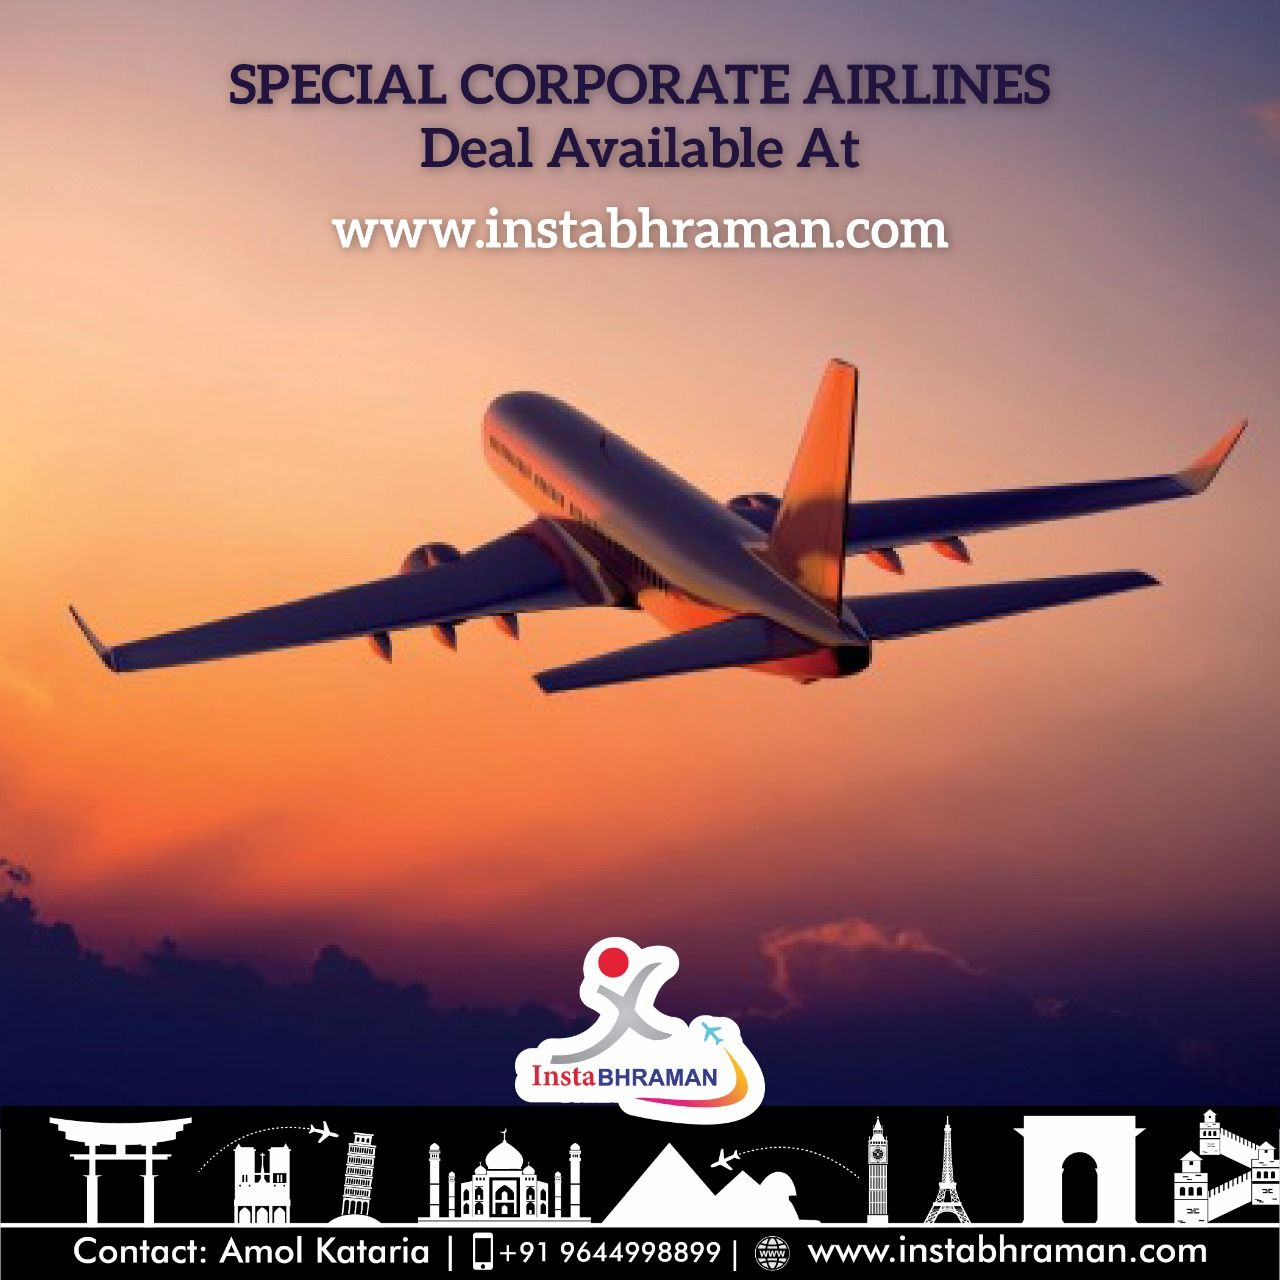 Hotel Reservation | Air Tickets | Instabhraman